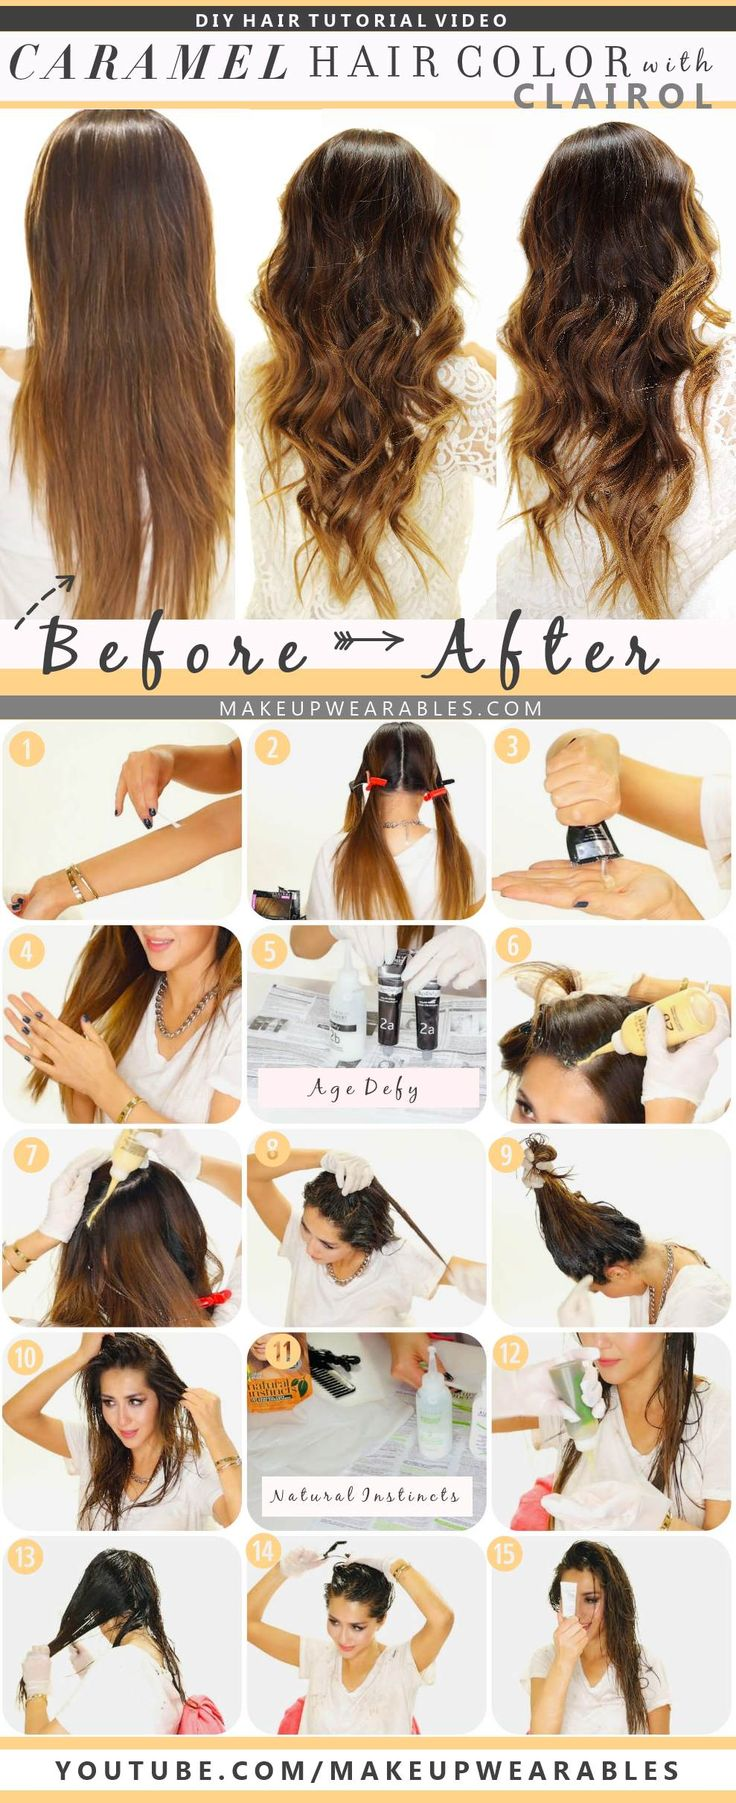 Best 25+ Clairol hair dye ideas on Pinterest | Professional hair ...